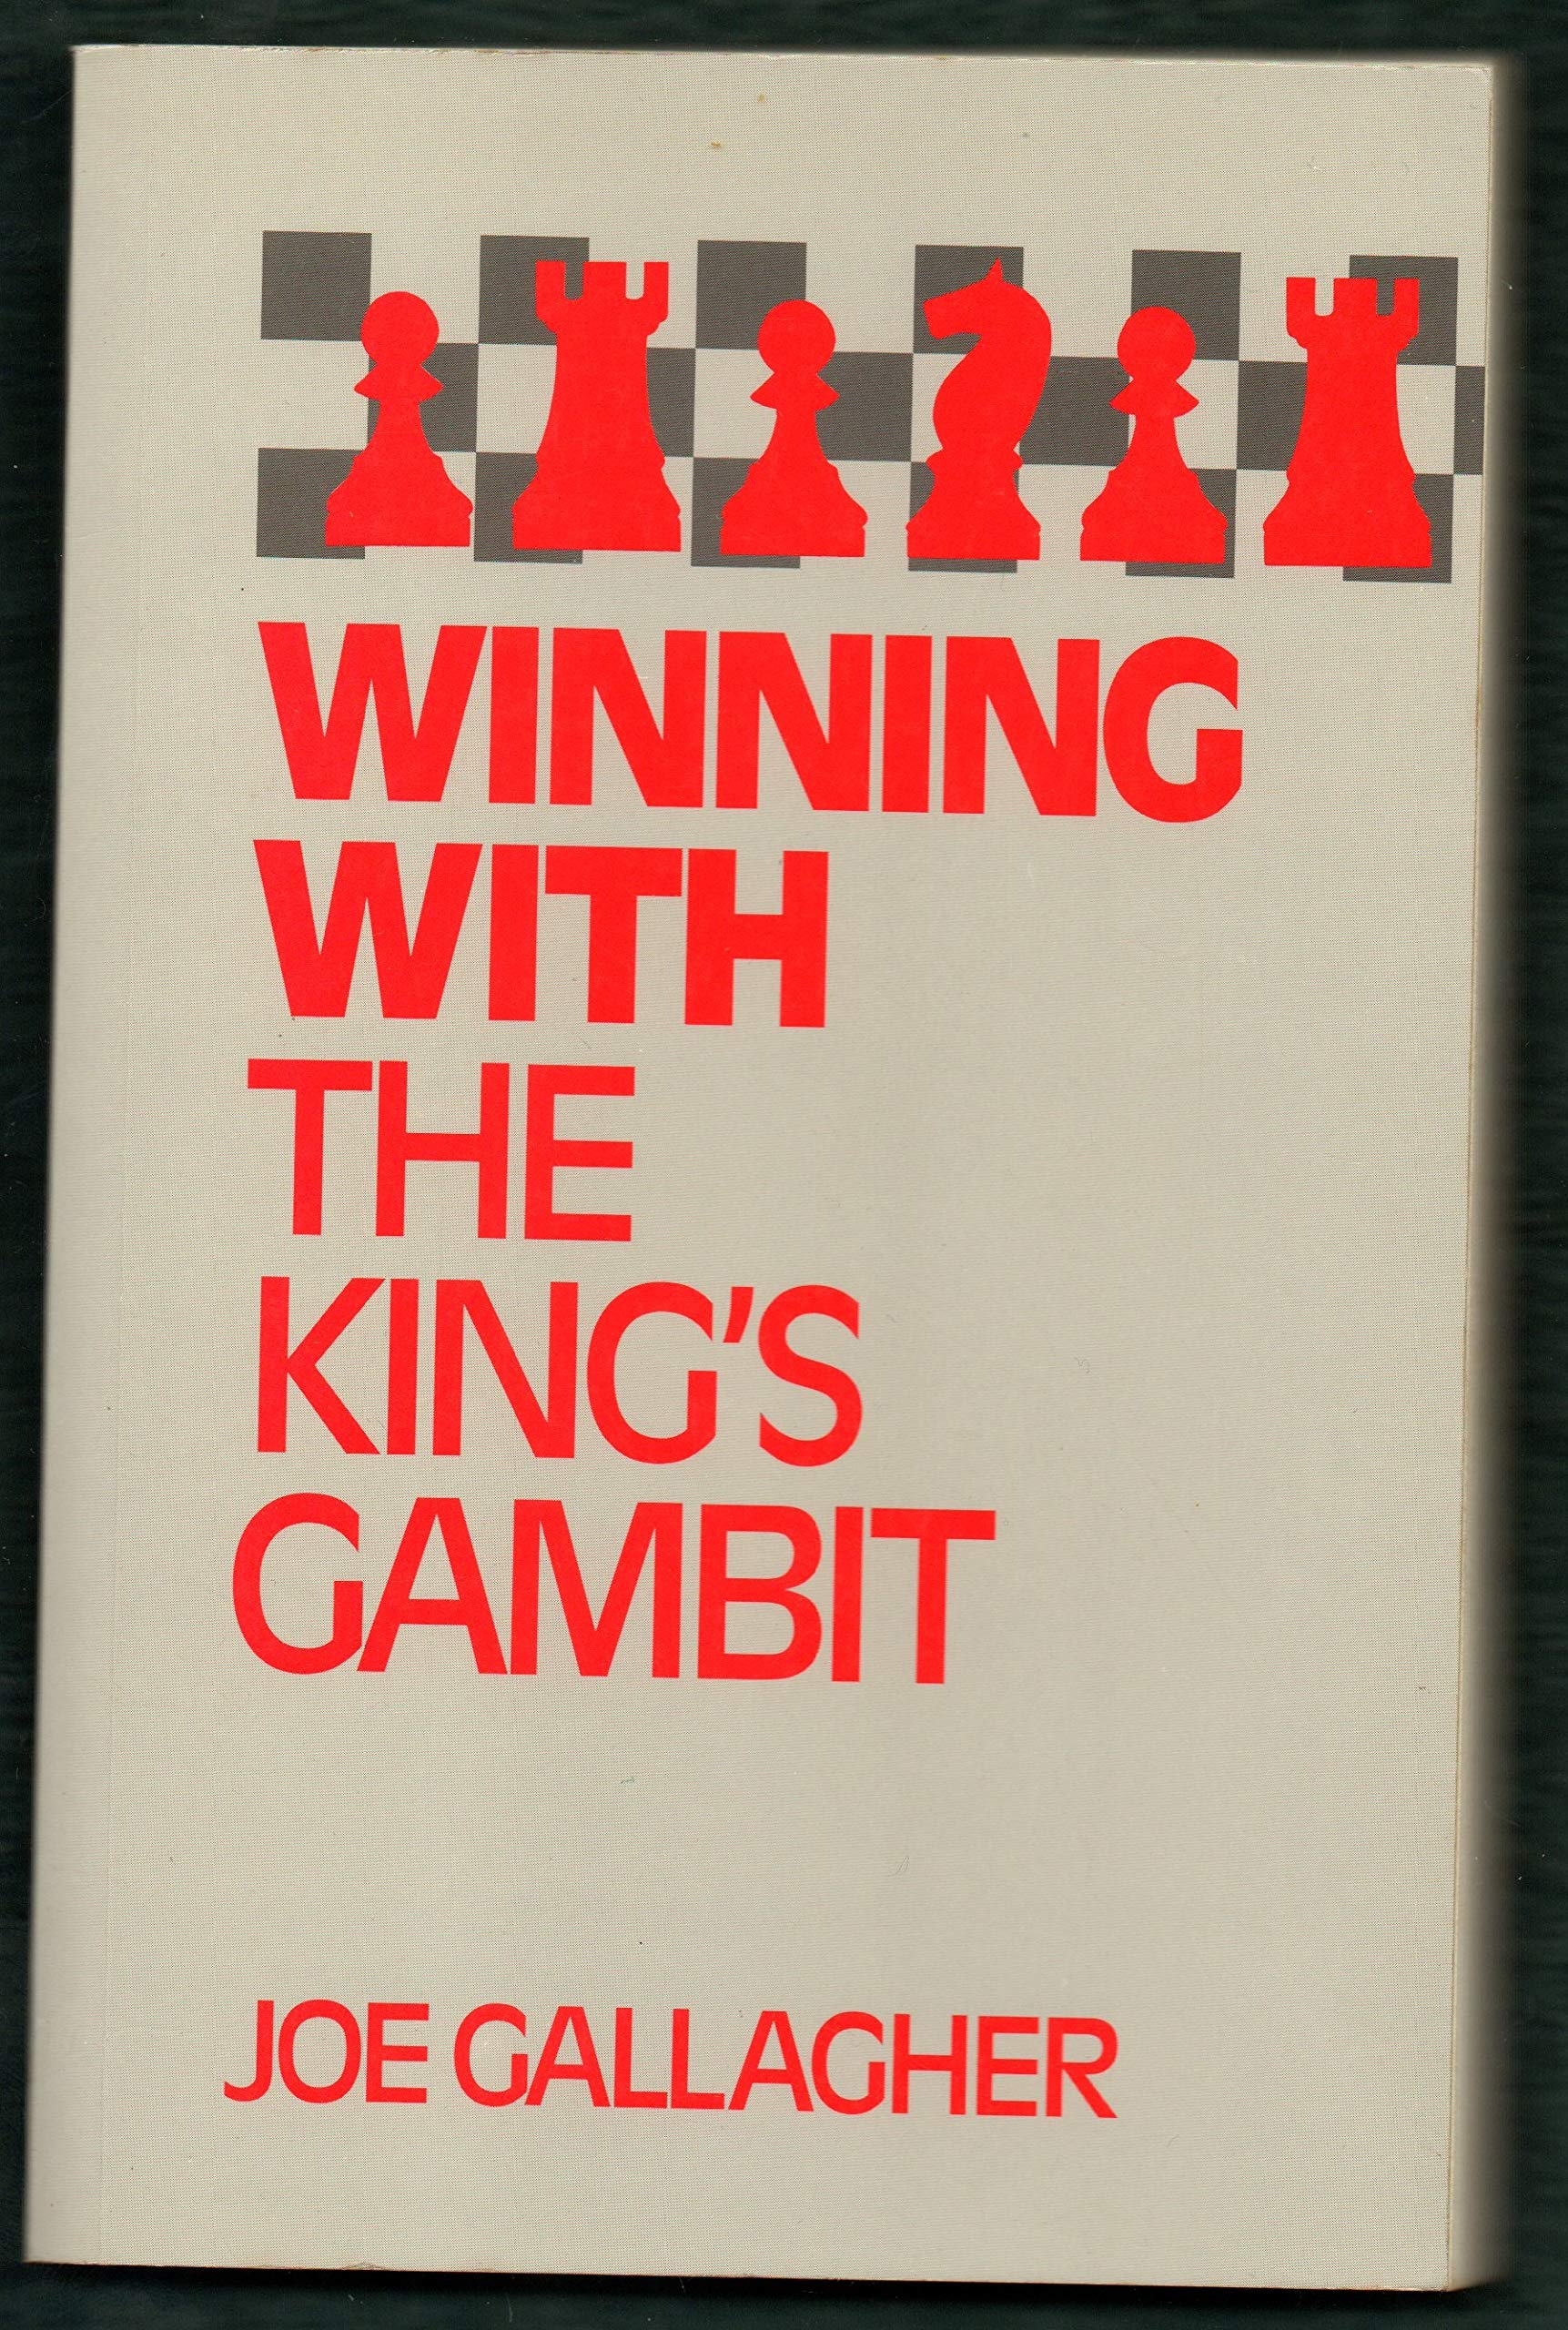 Winning With the King's Gambit, Batsford, ISBN 0-7134-6944-7